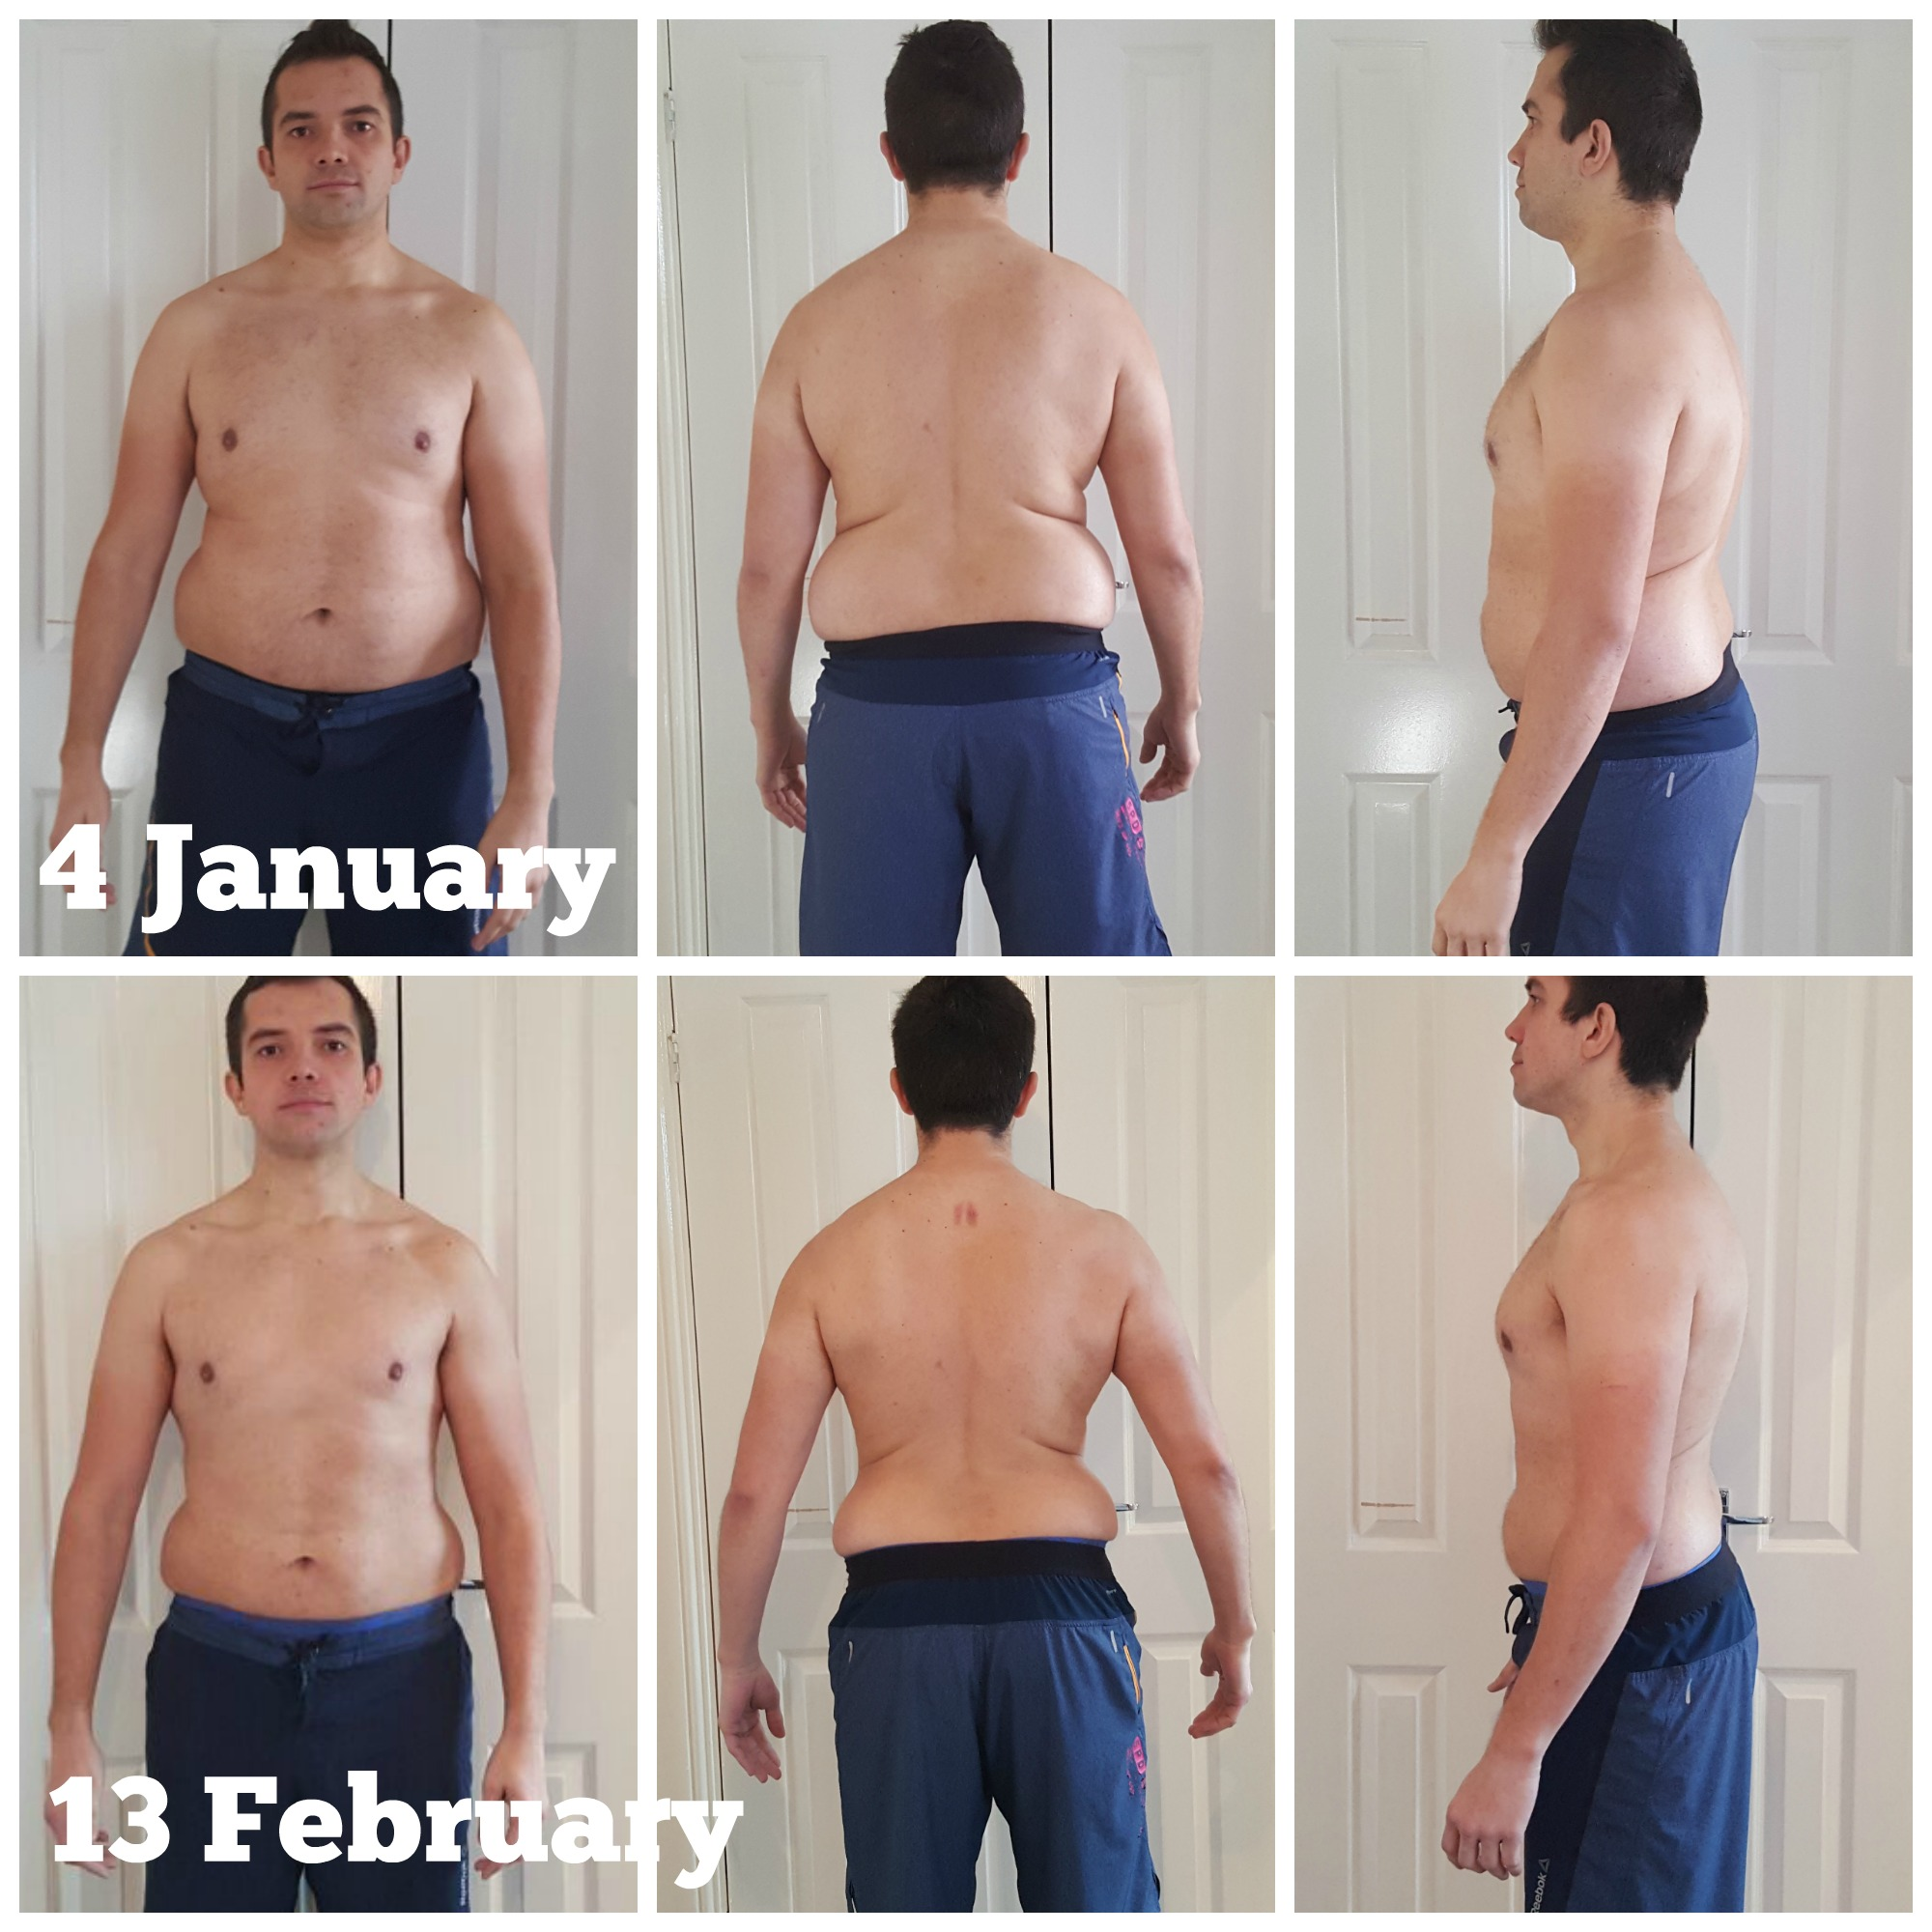 Arnie's Before & After Photos